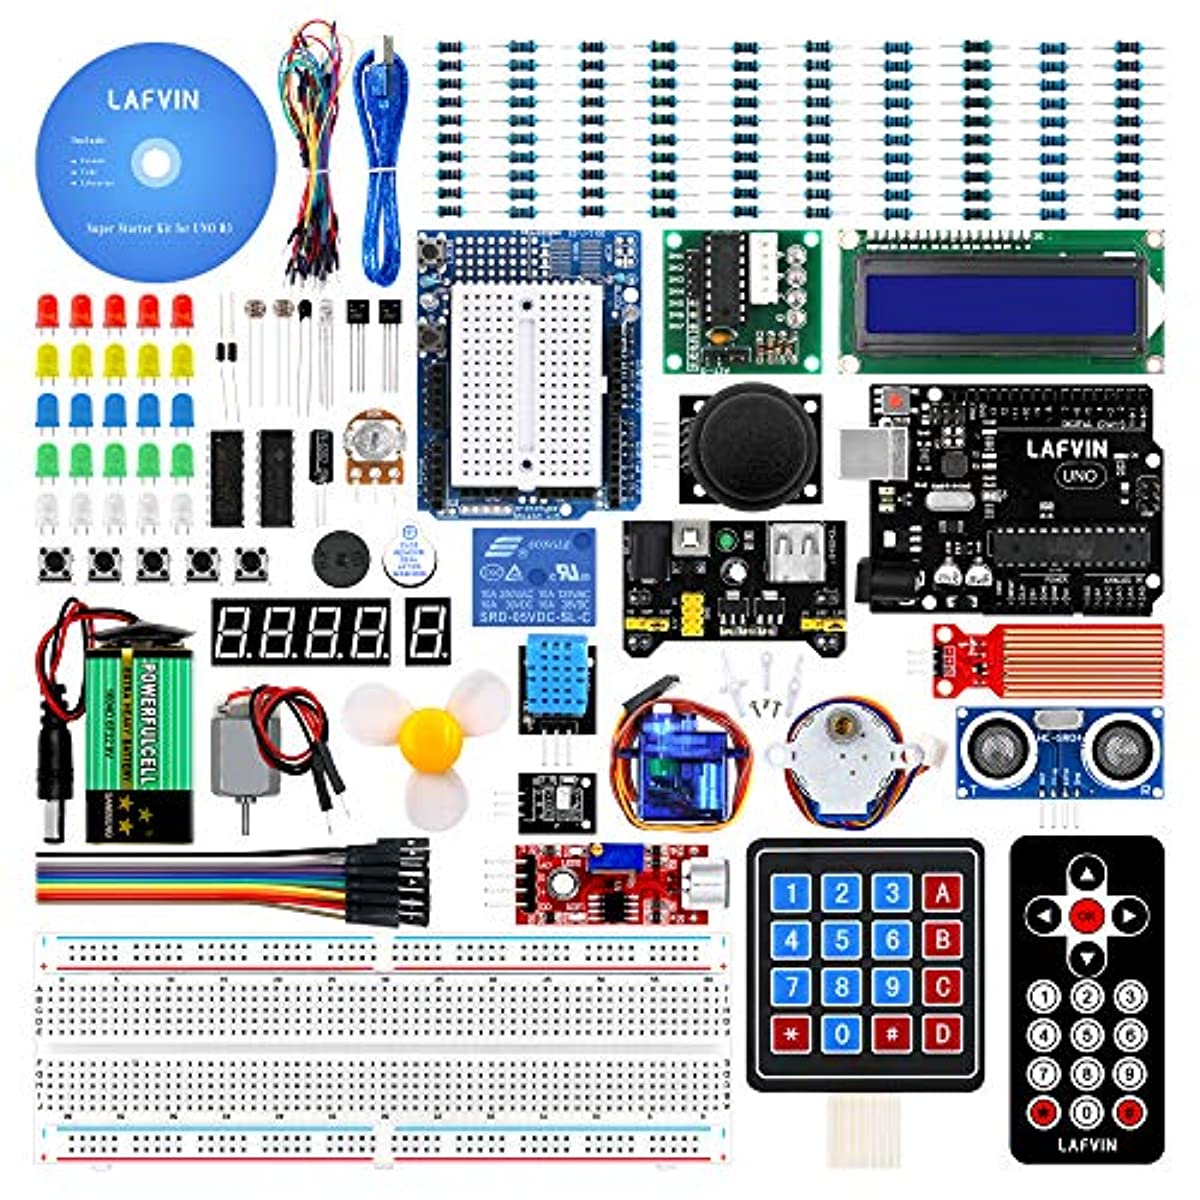 electronic project starter kit beginners uno r3 board diy arduinodetails about electronic project starter kit beginners uno r3 board diy arduino lcd 1602 servo